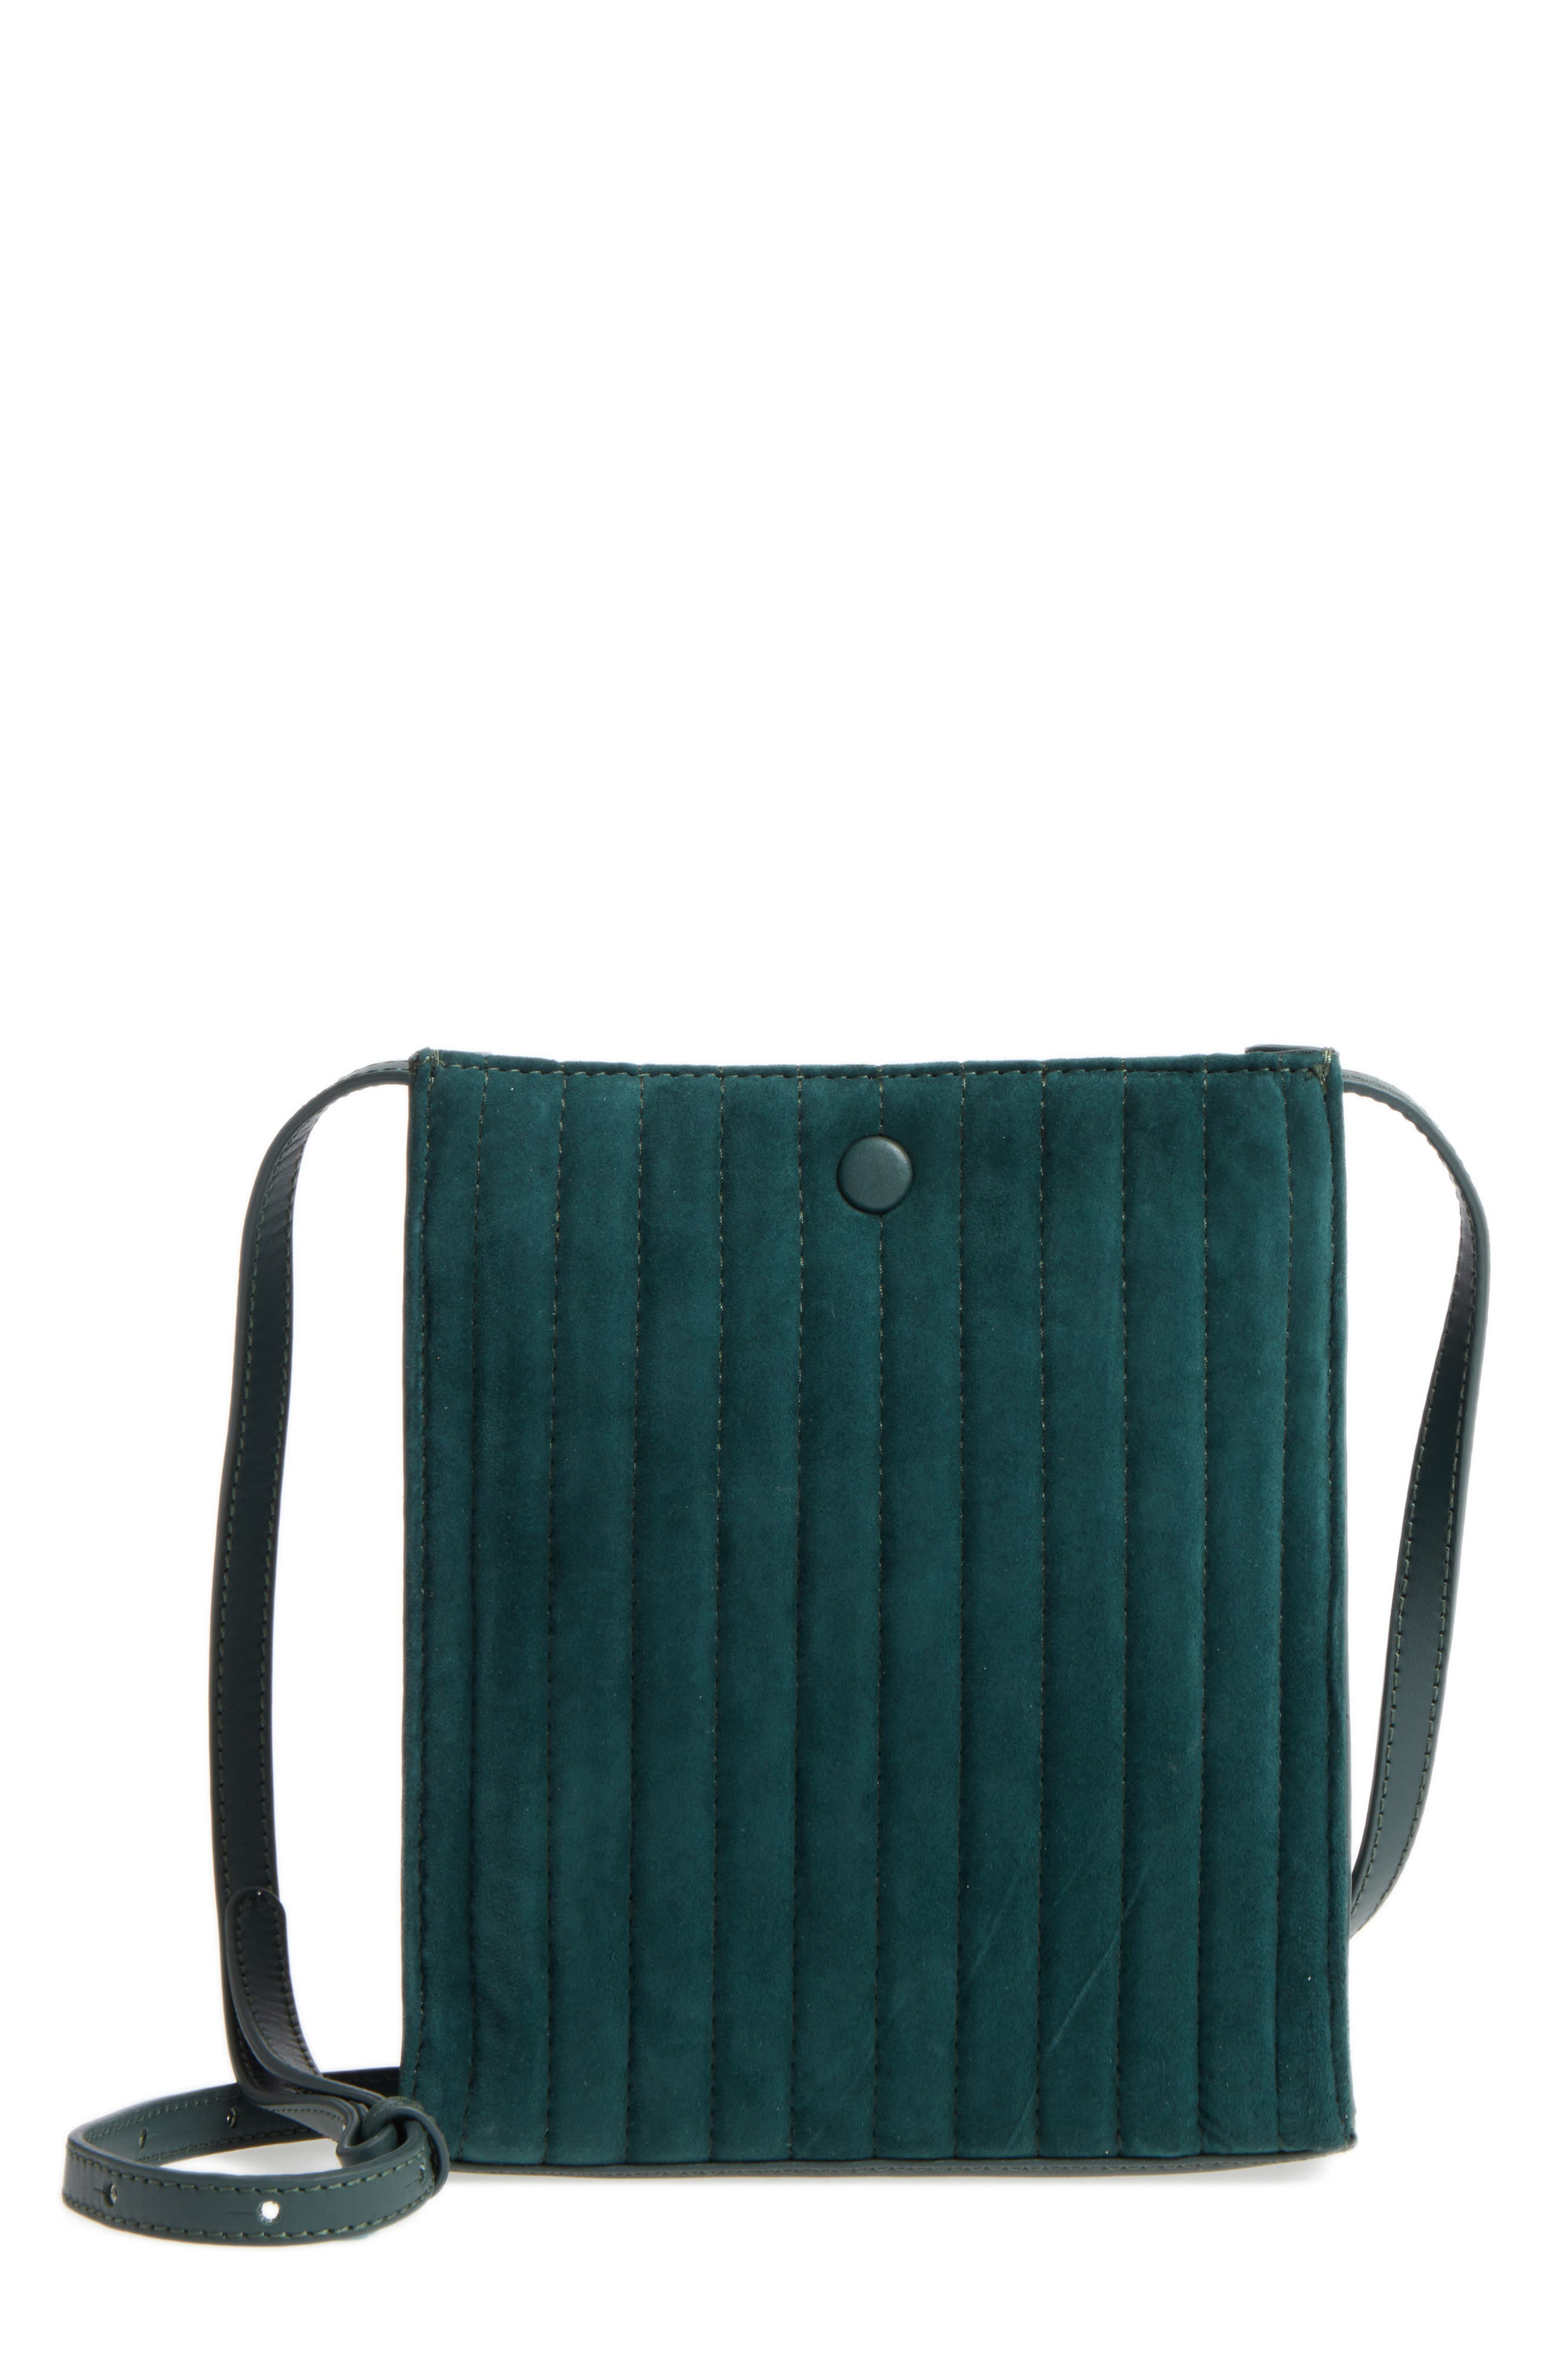 Camden Leather Crossbody Bag,                         Main,                         color, Ink Green Quilted